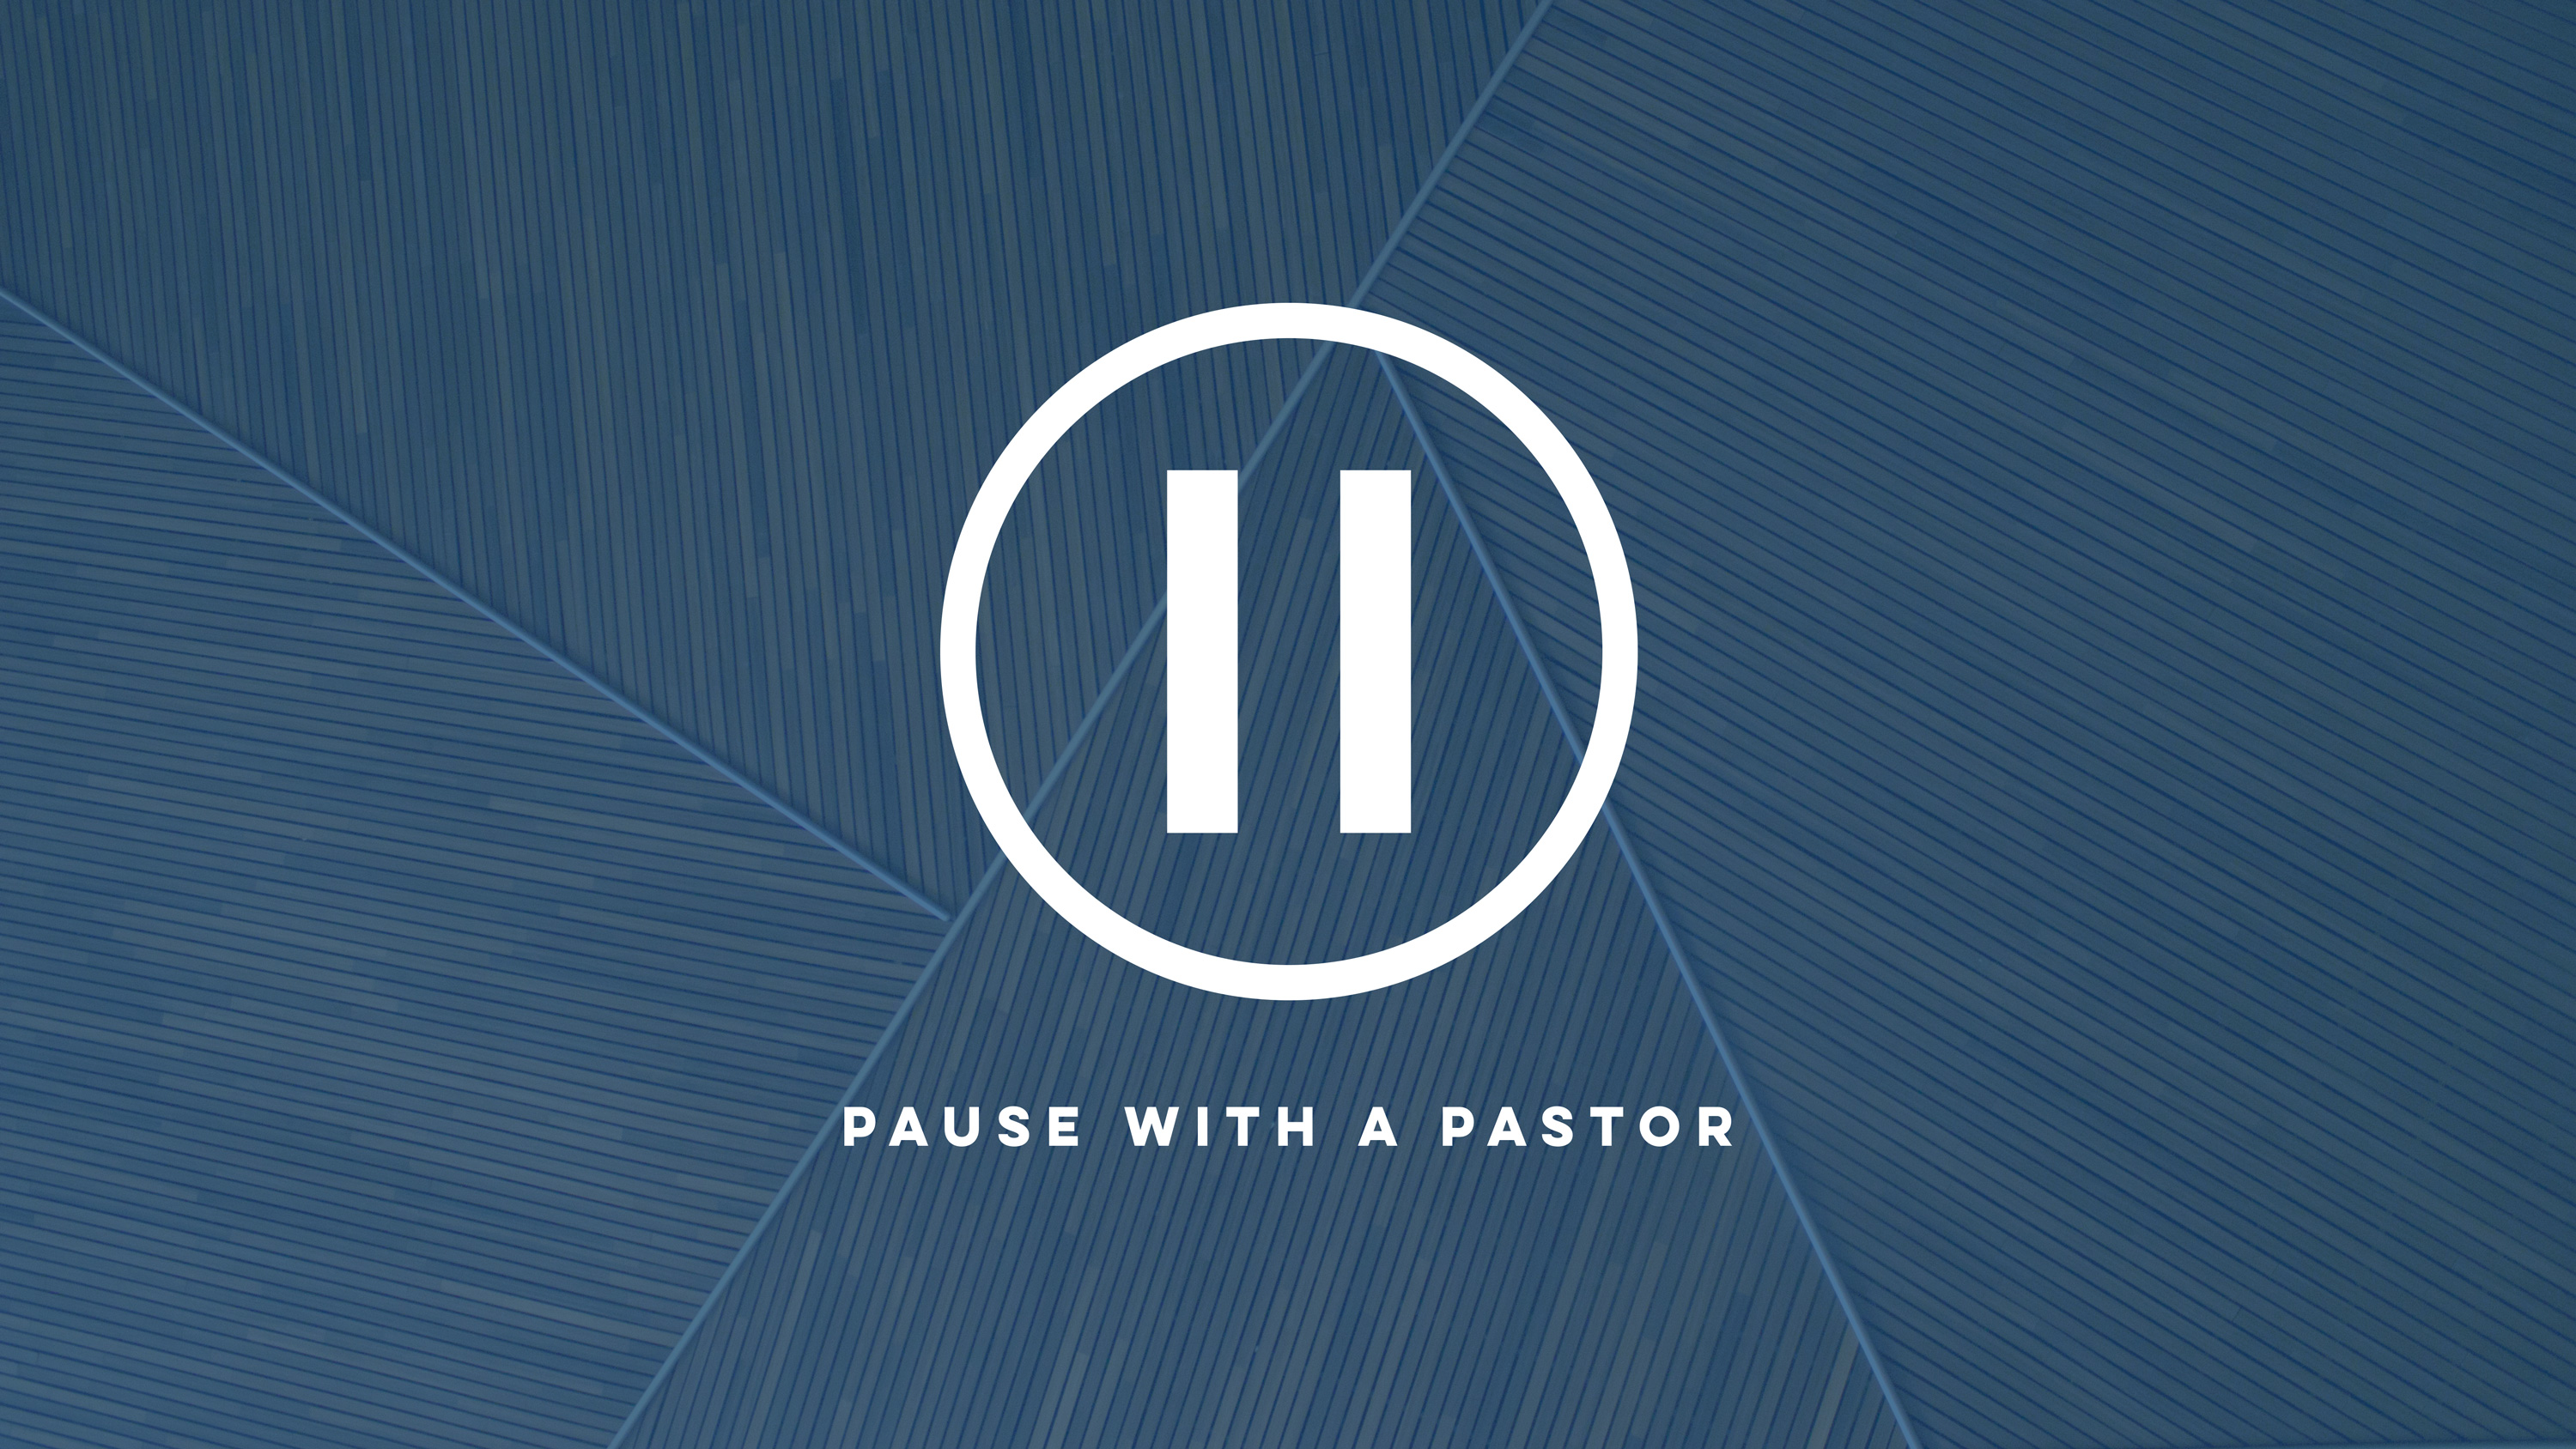 200421-Pause-with-A-Pastor-16x9